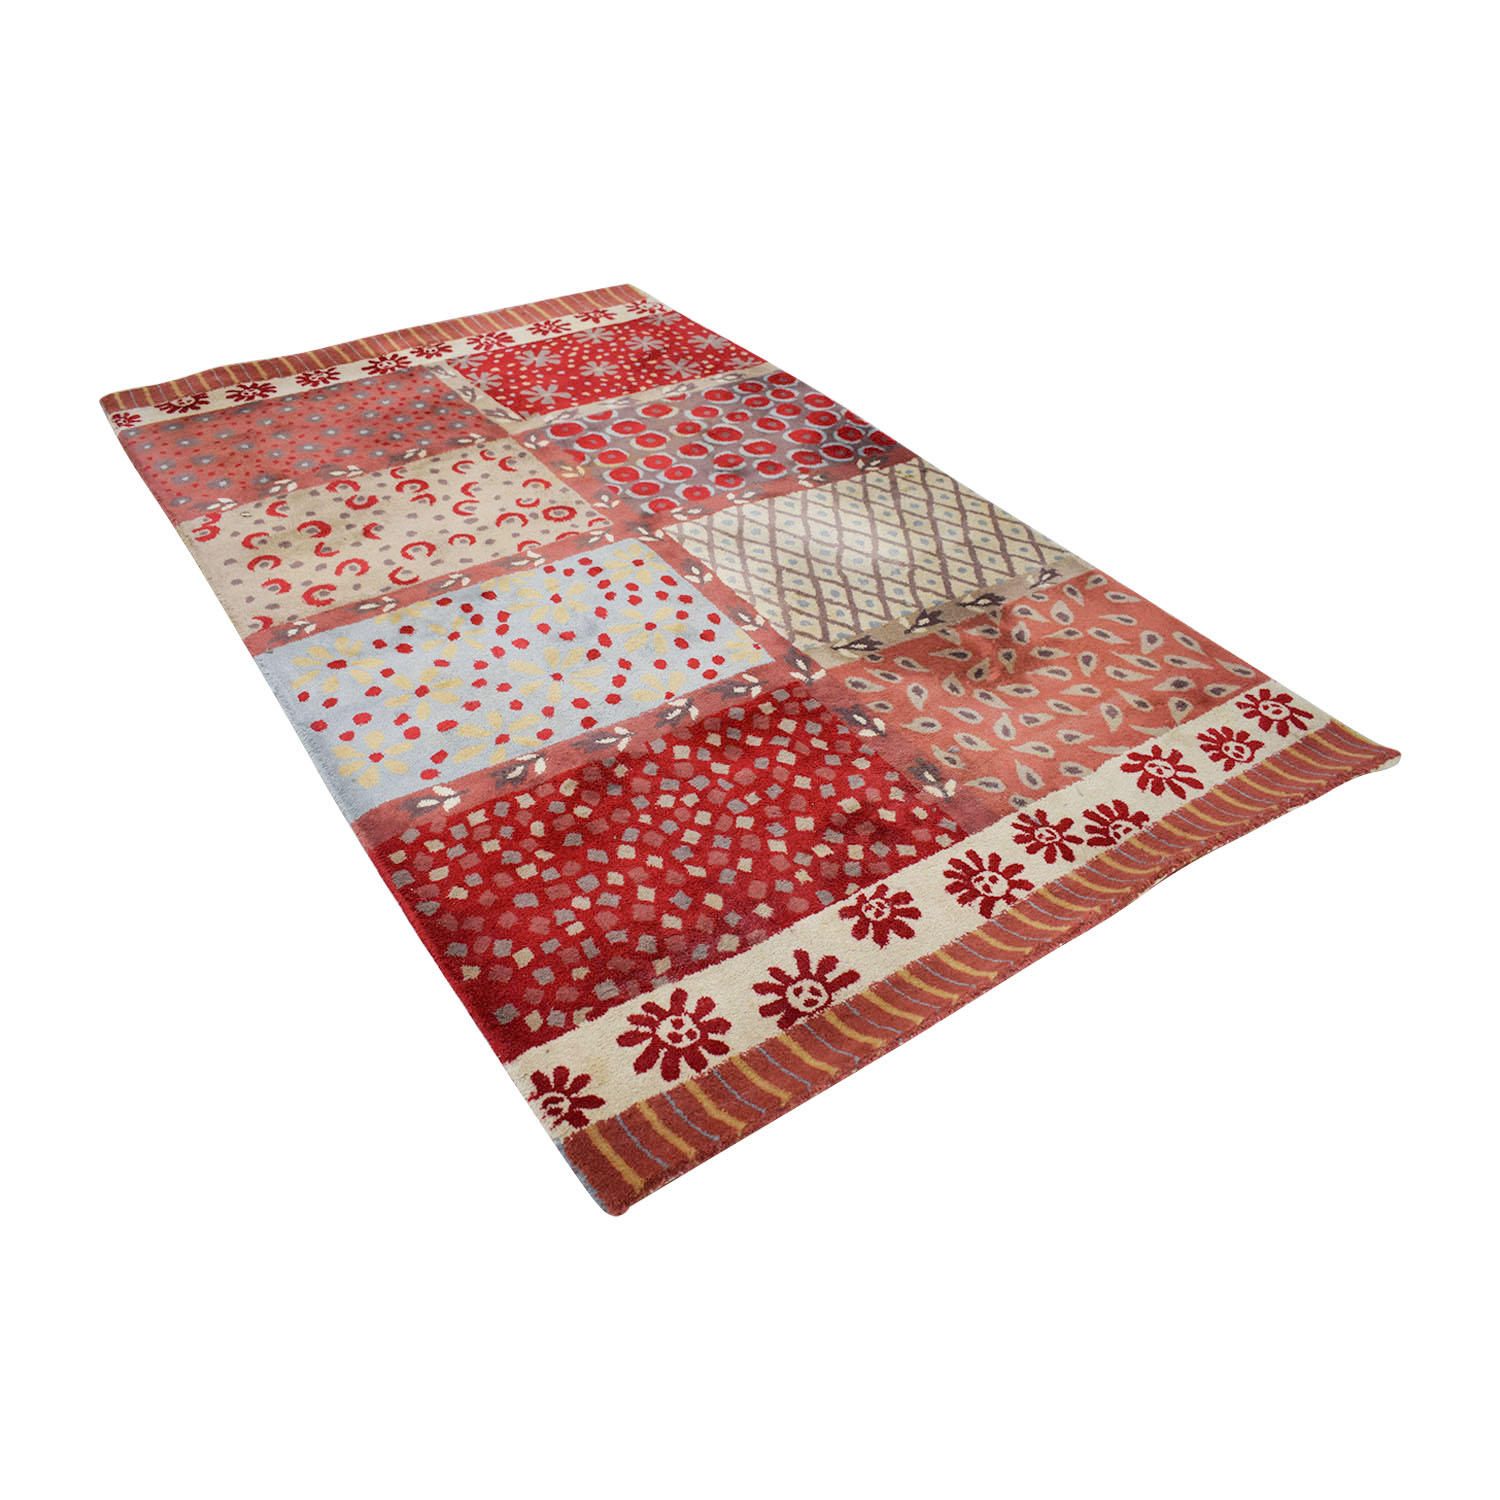 Pottery Barn Pottery Barn Red Multi-Colored Rug price